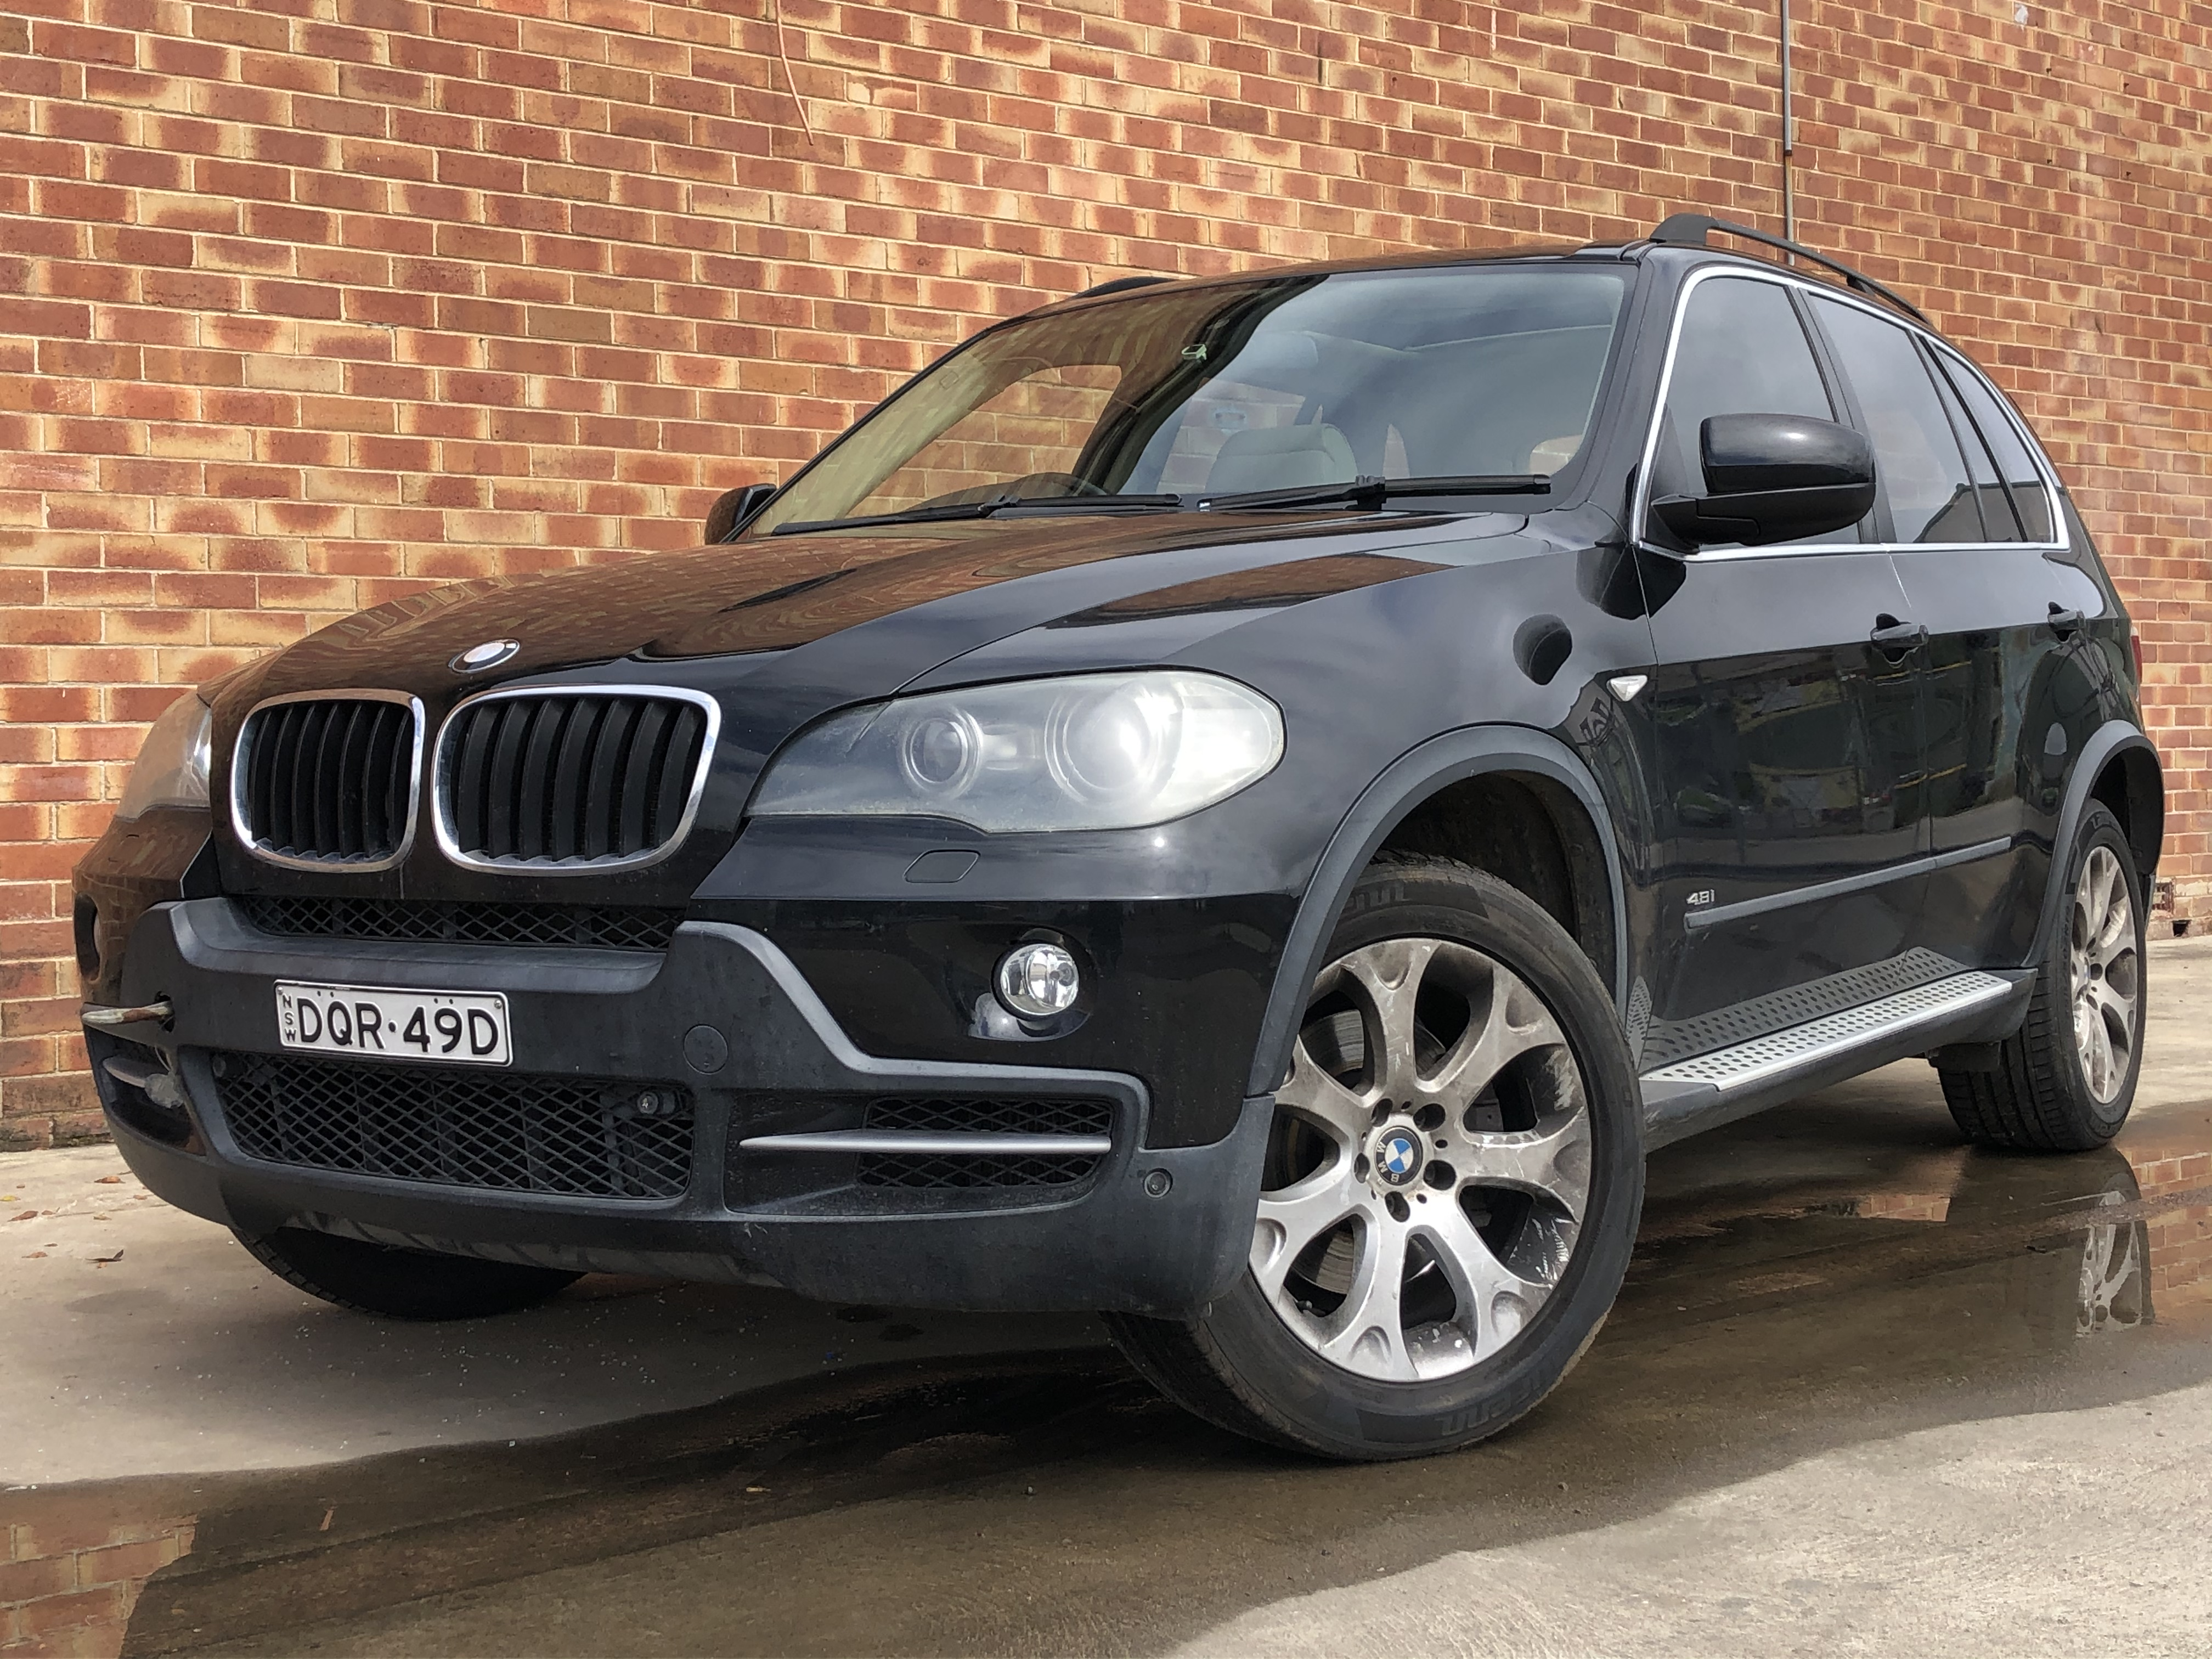 BMW X5 4.8i E70 Automatic Wagon